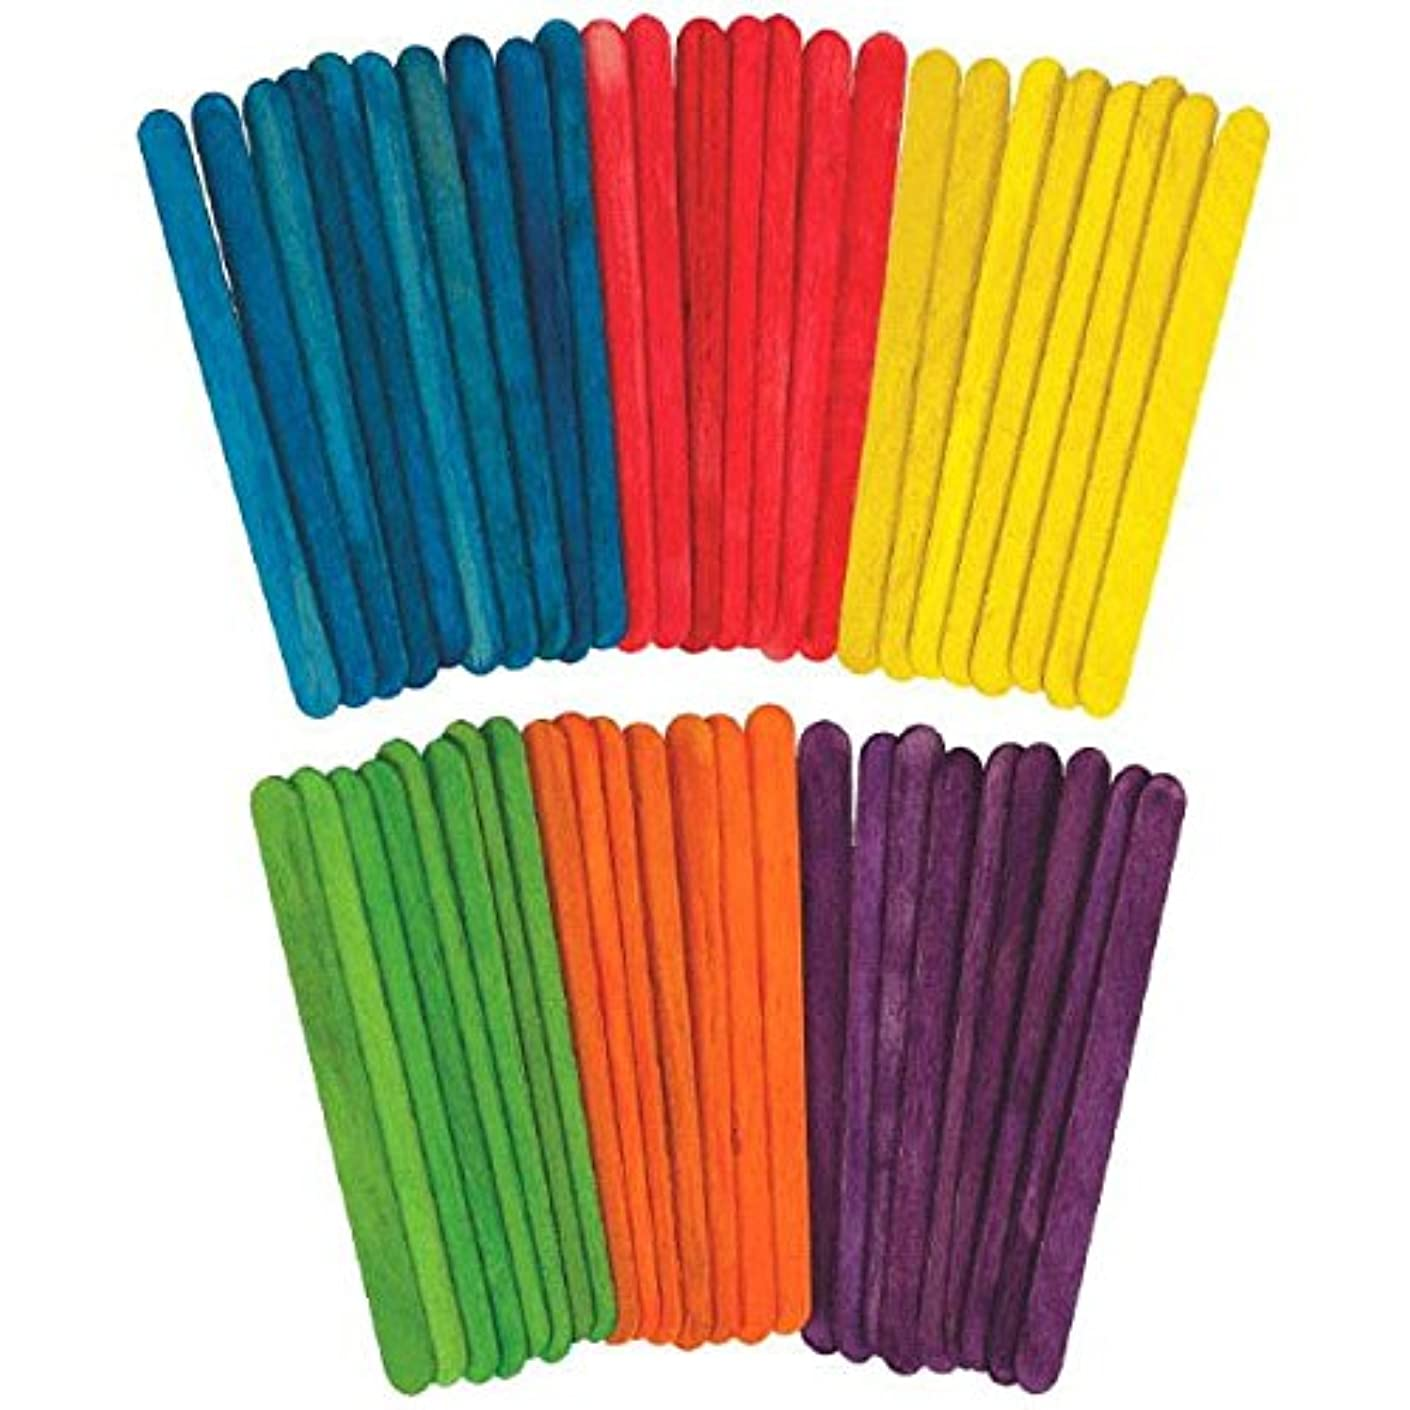 Primary Wooden Sticks | Party Favor | 100 Ct.